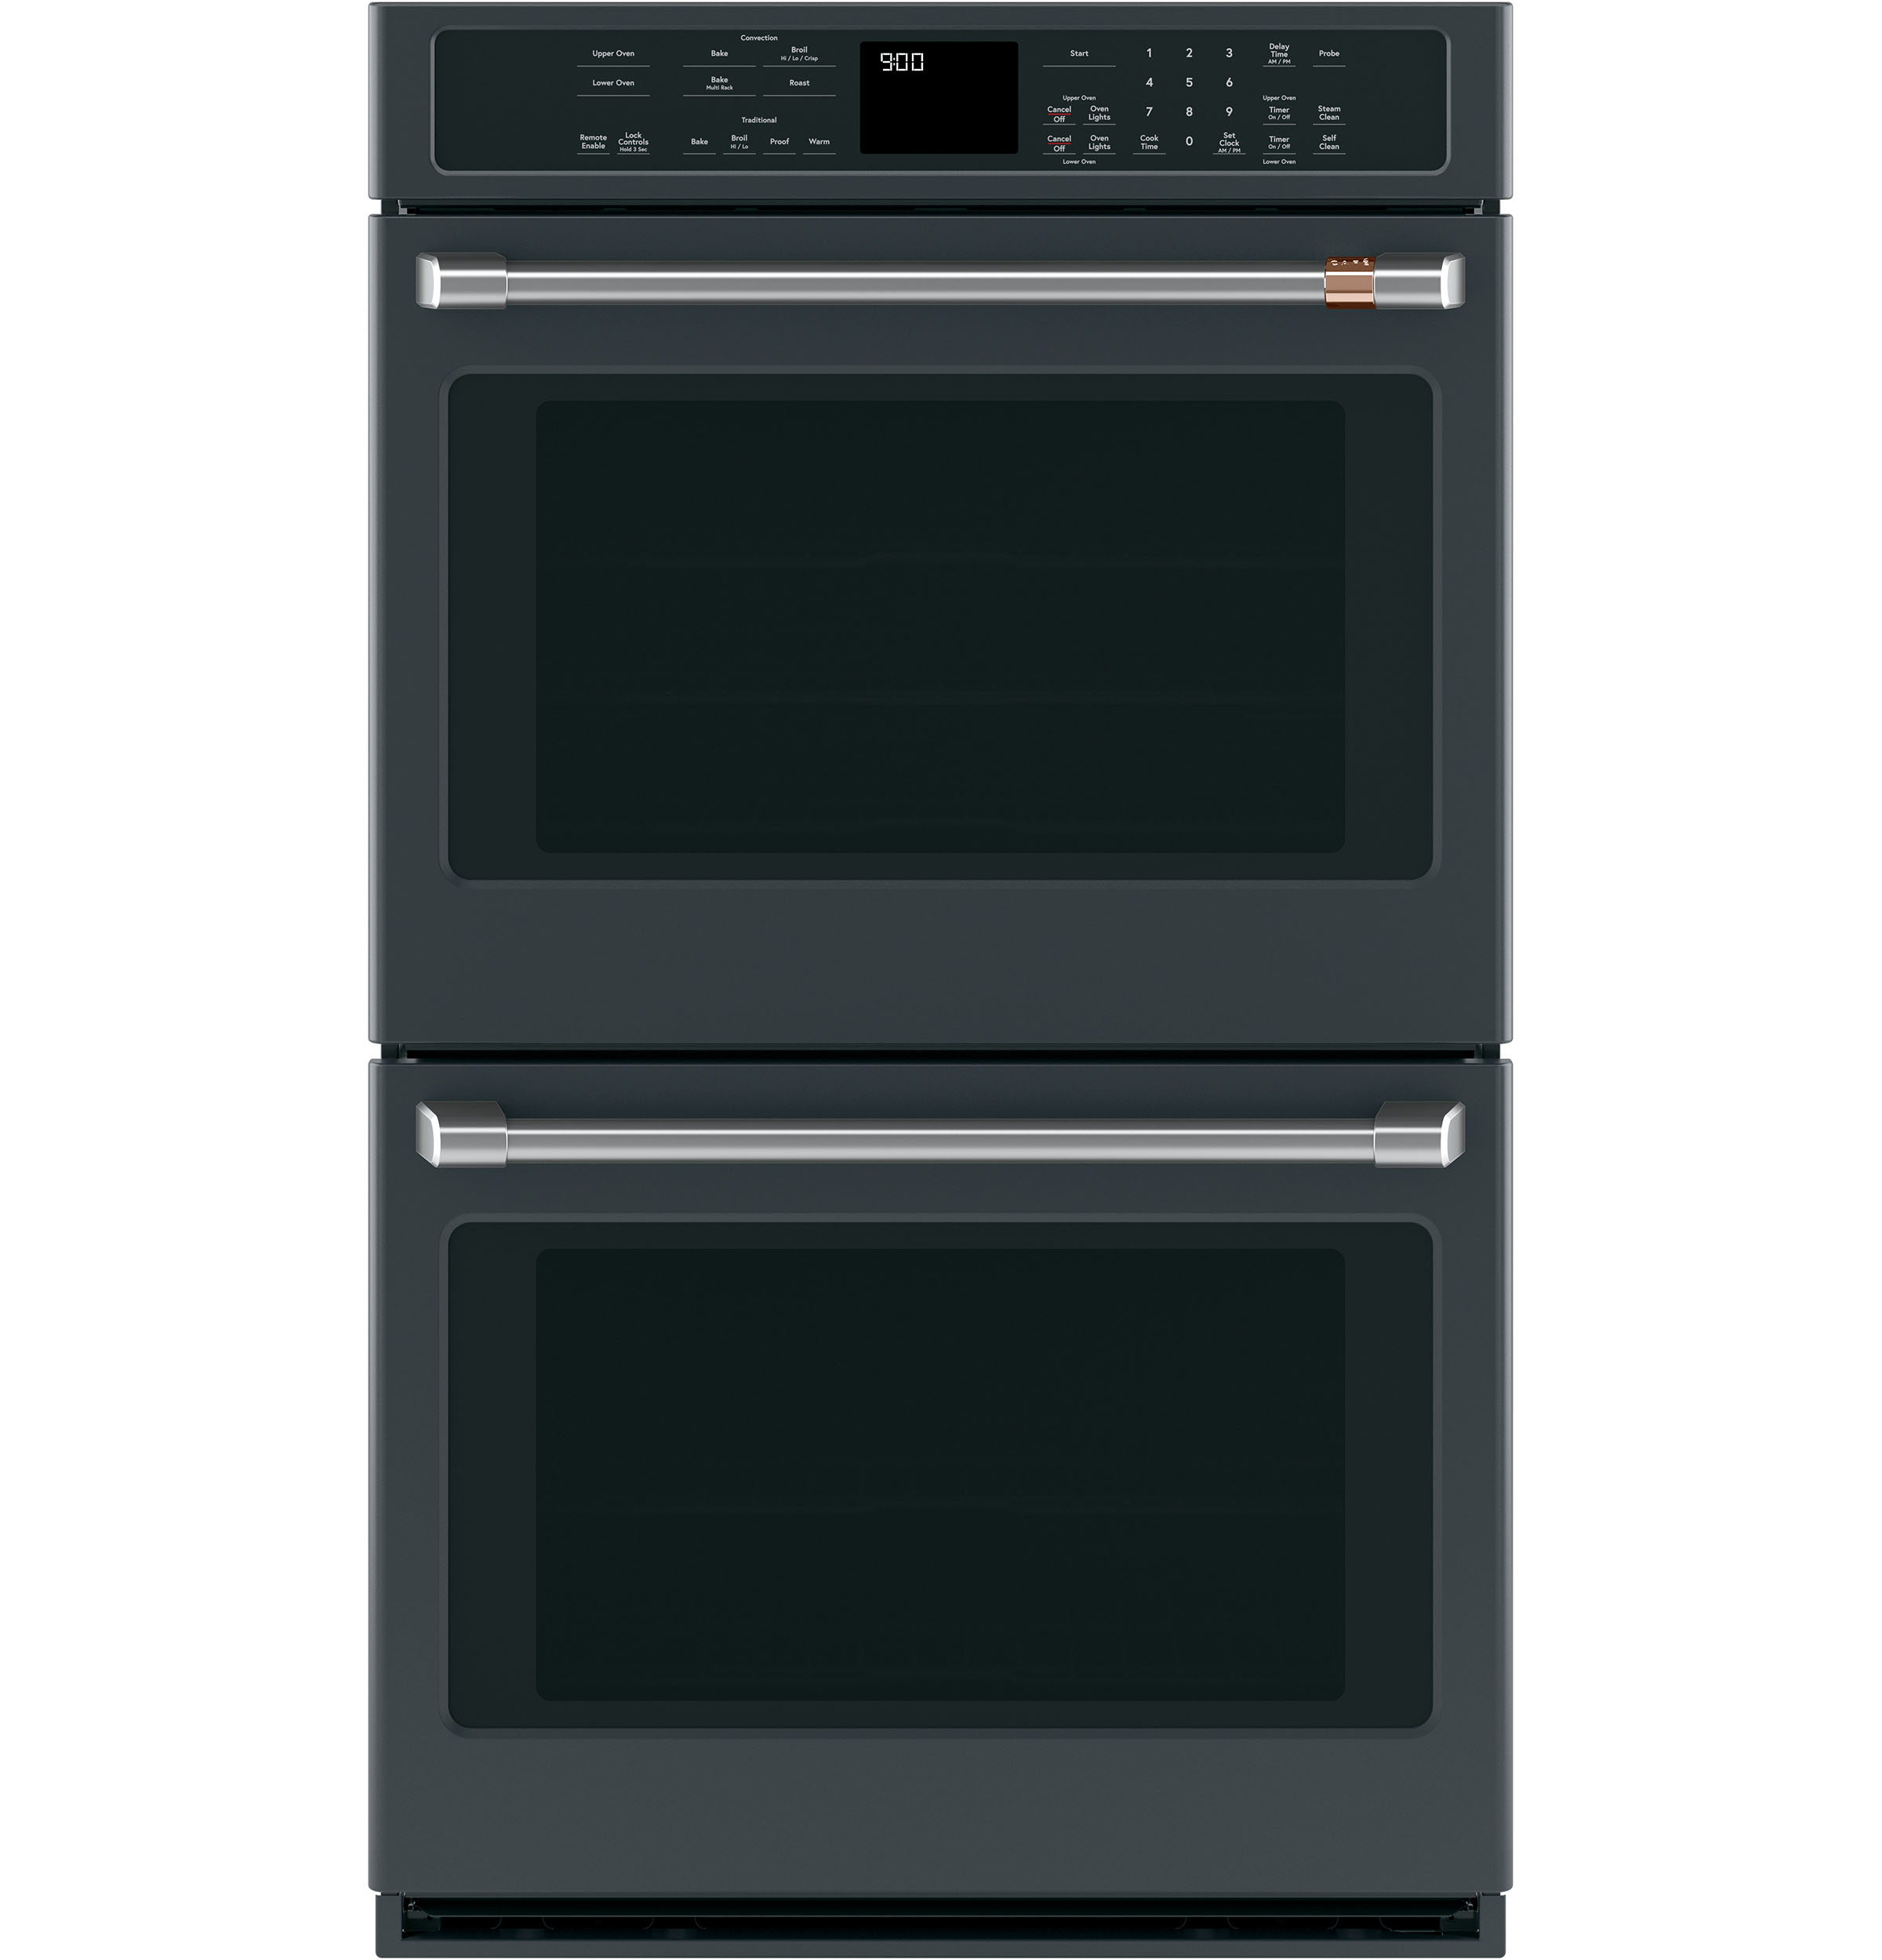 GE Café Wall oven 30 Black in Black color showcased by Corbeil Electro Store